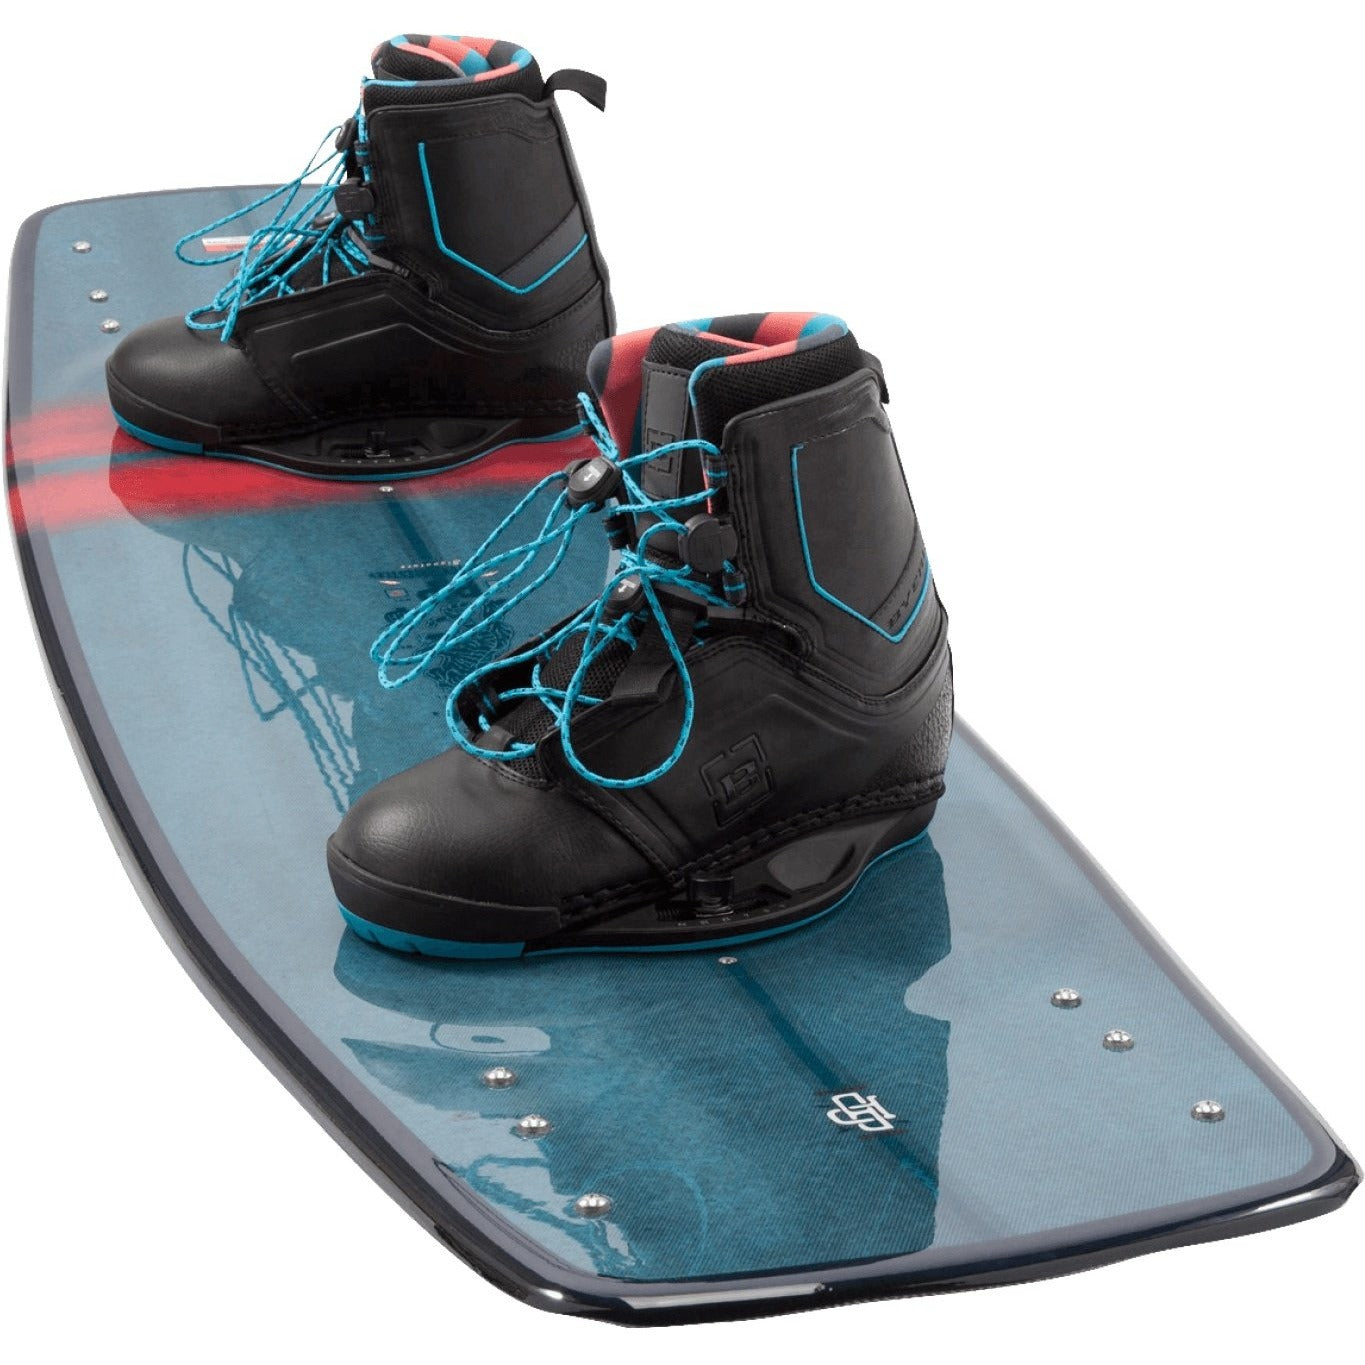 Byerly BP Wakeboard Package with Clutch Boots - 88 Gear